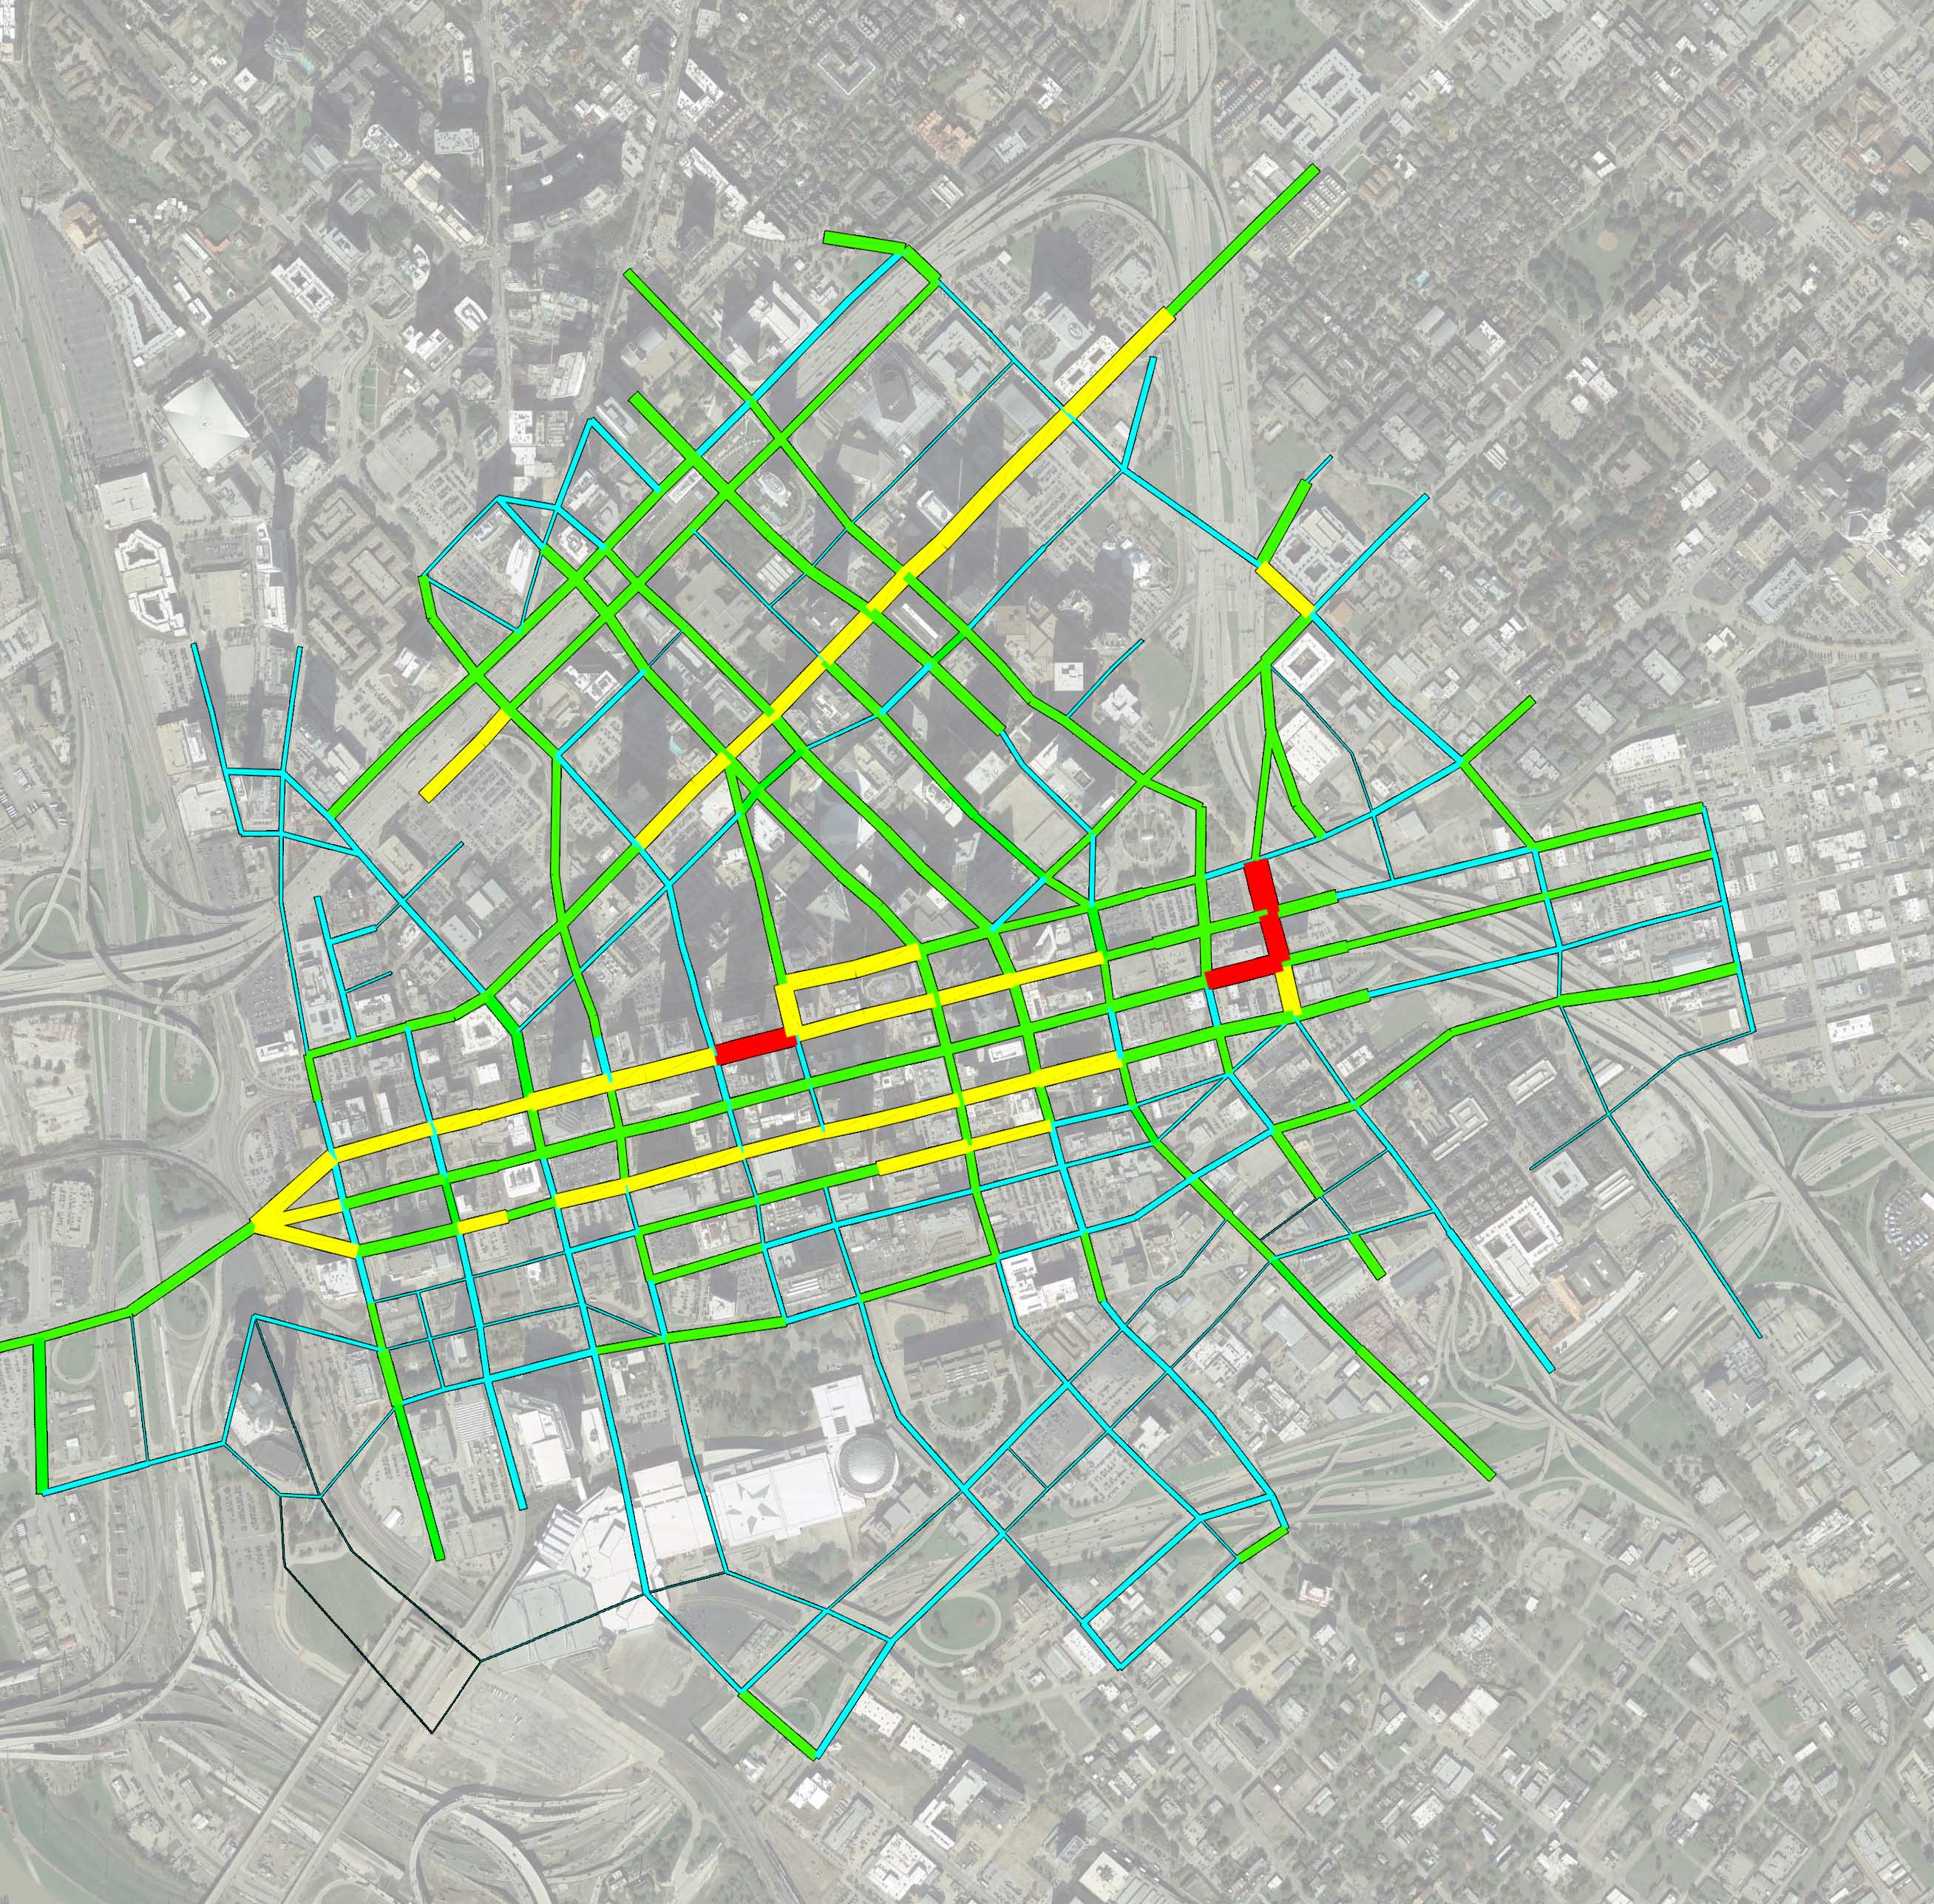 Heat Map of Downtown Dallas Traffic to Capacity